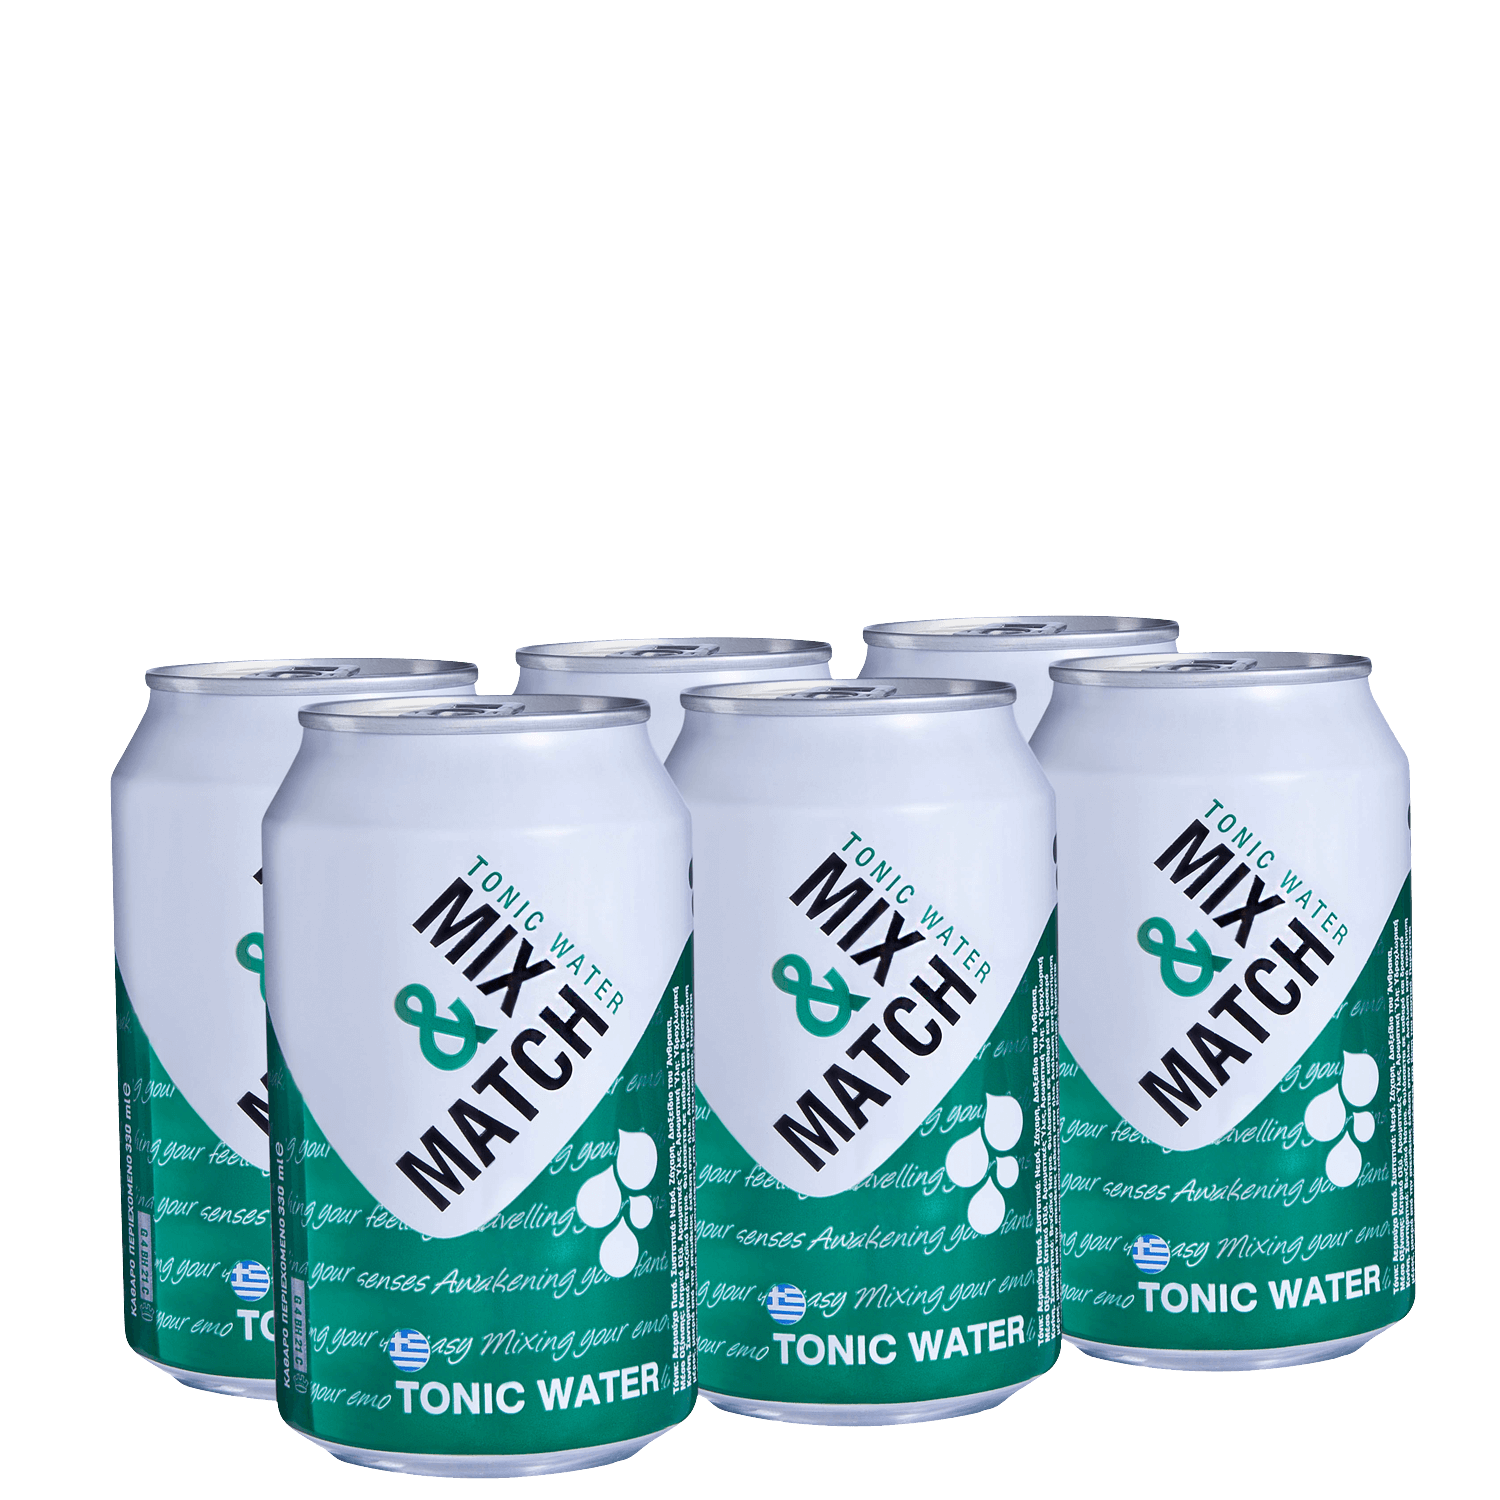 Mix Match Tonic - Multi Pack - (6x330ml cans)